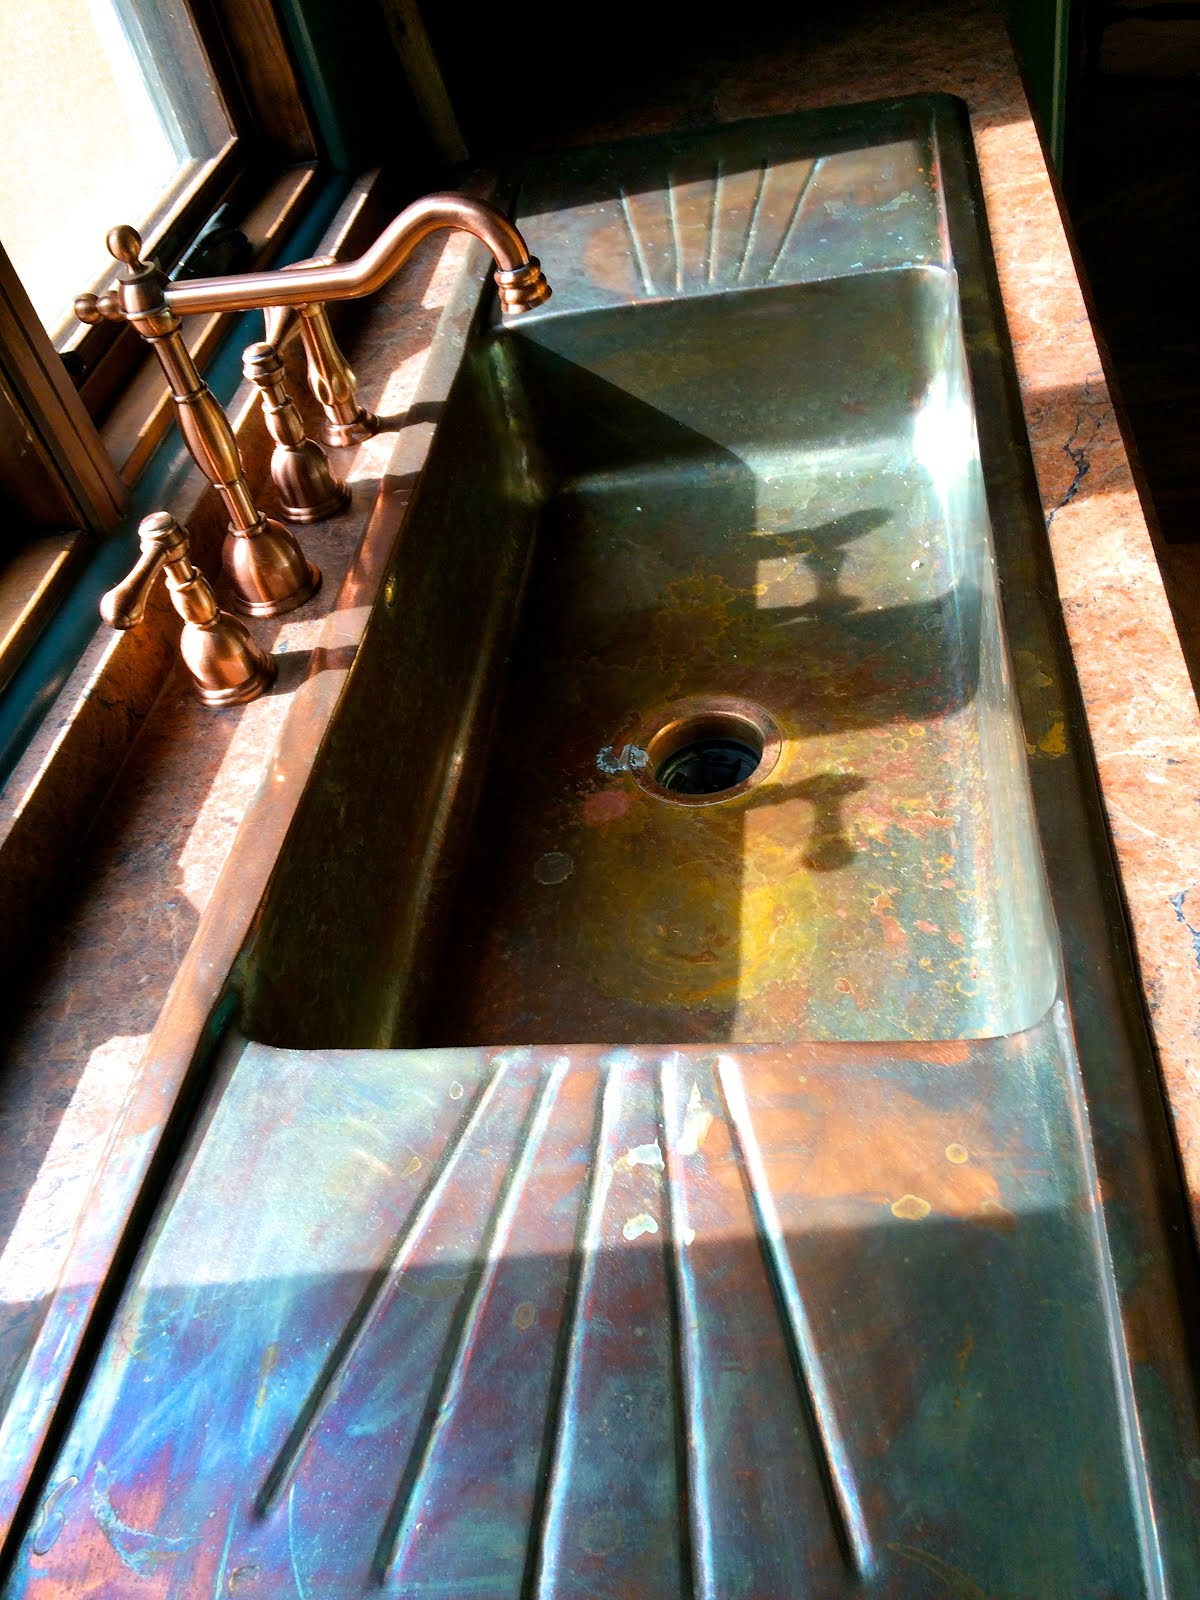 One of a kind copper sink causes kitchen envy.